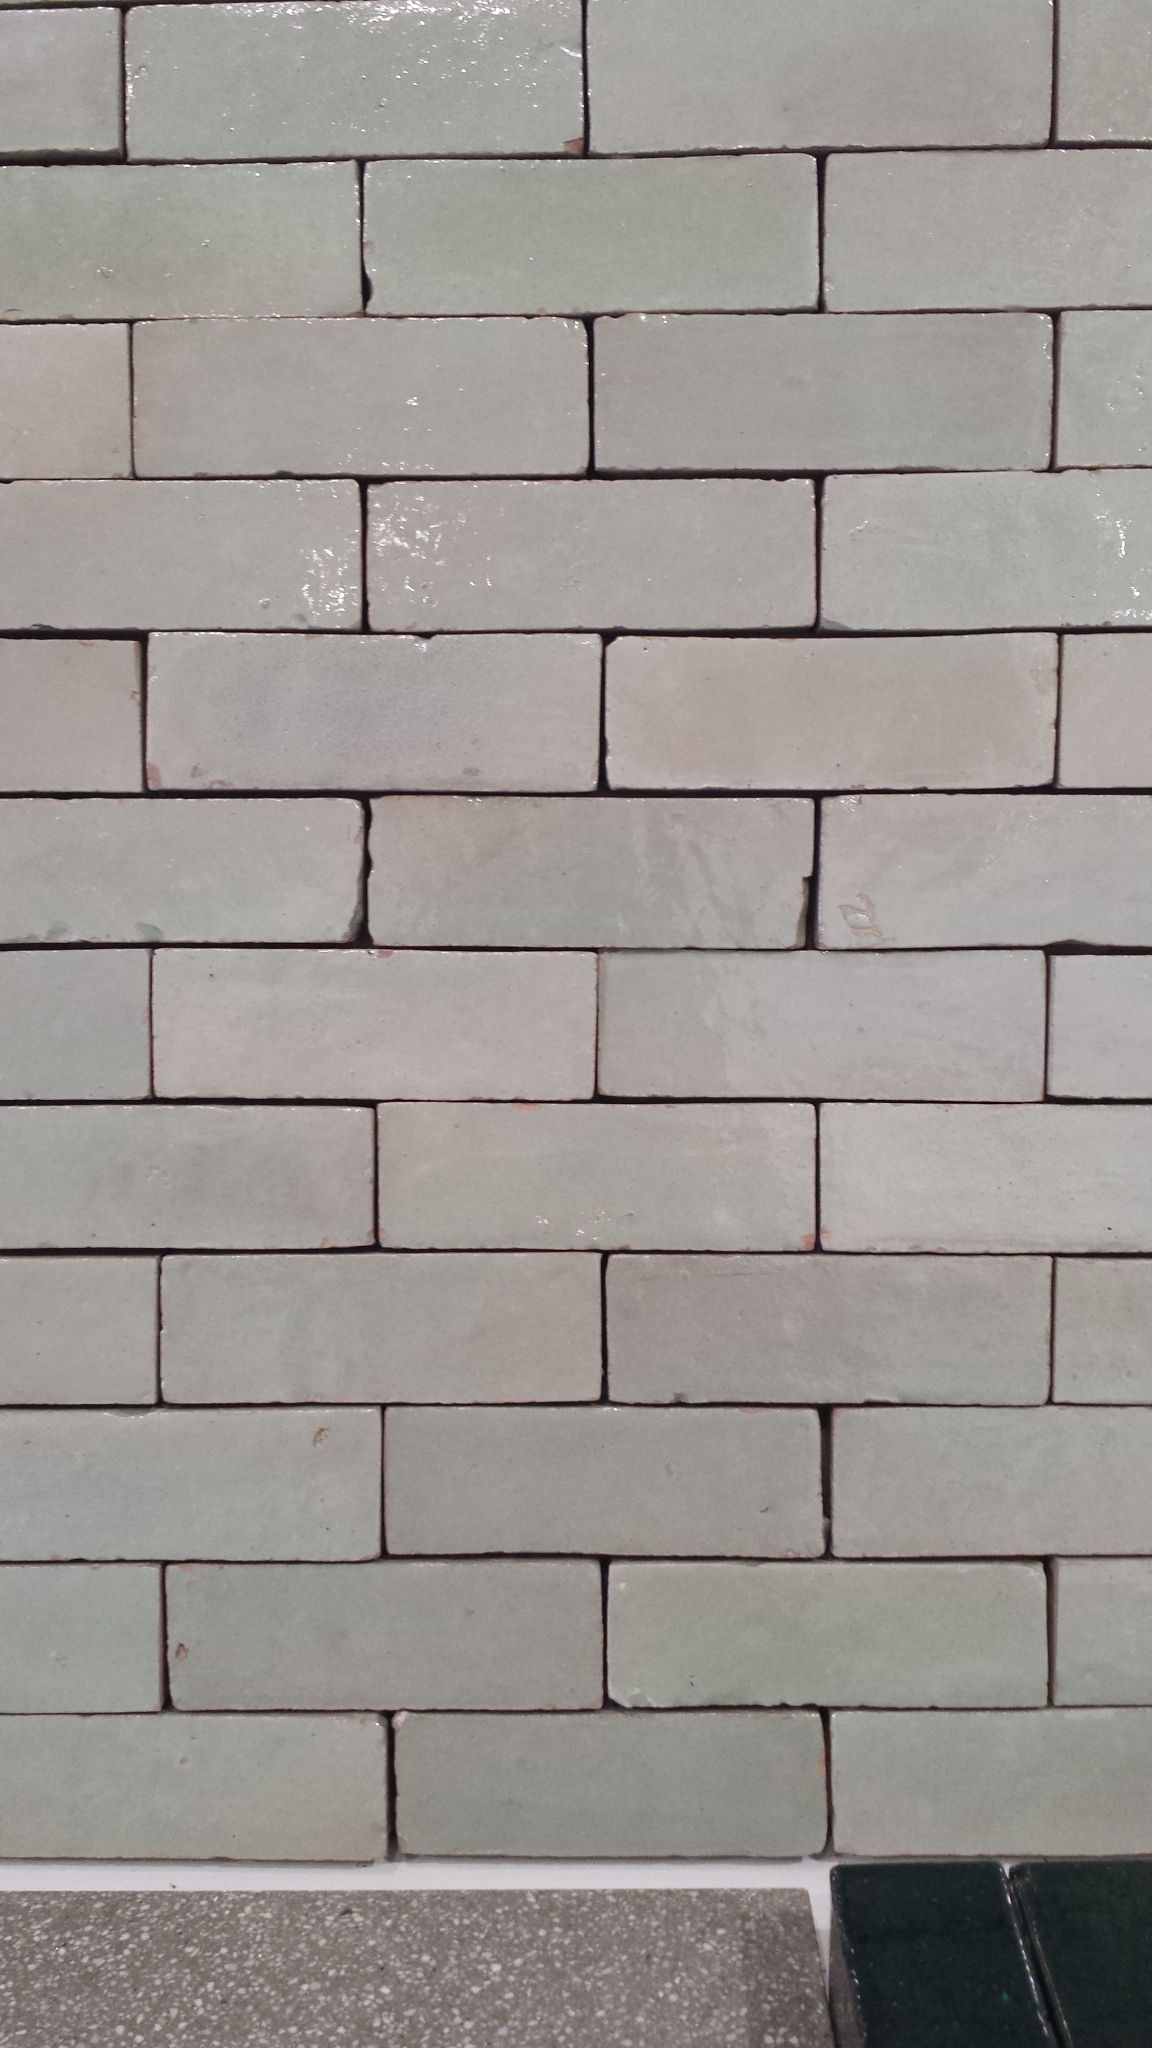 Handmade subway tiles gorgeous get them at beach house tiles handmade subway tiles gorgeous get them at beach house tiles dailygadgetfo Choice Image